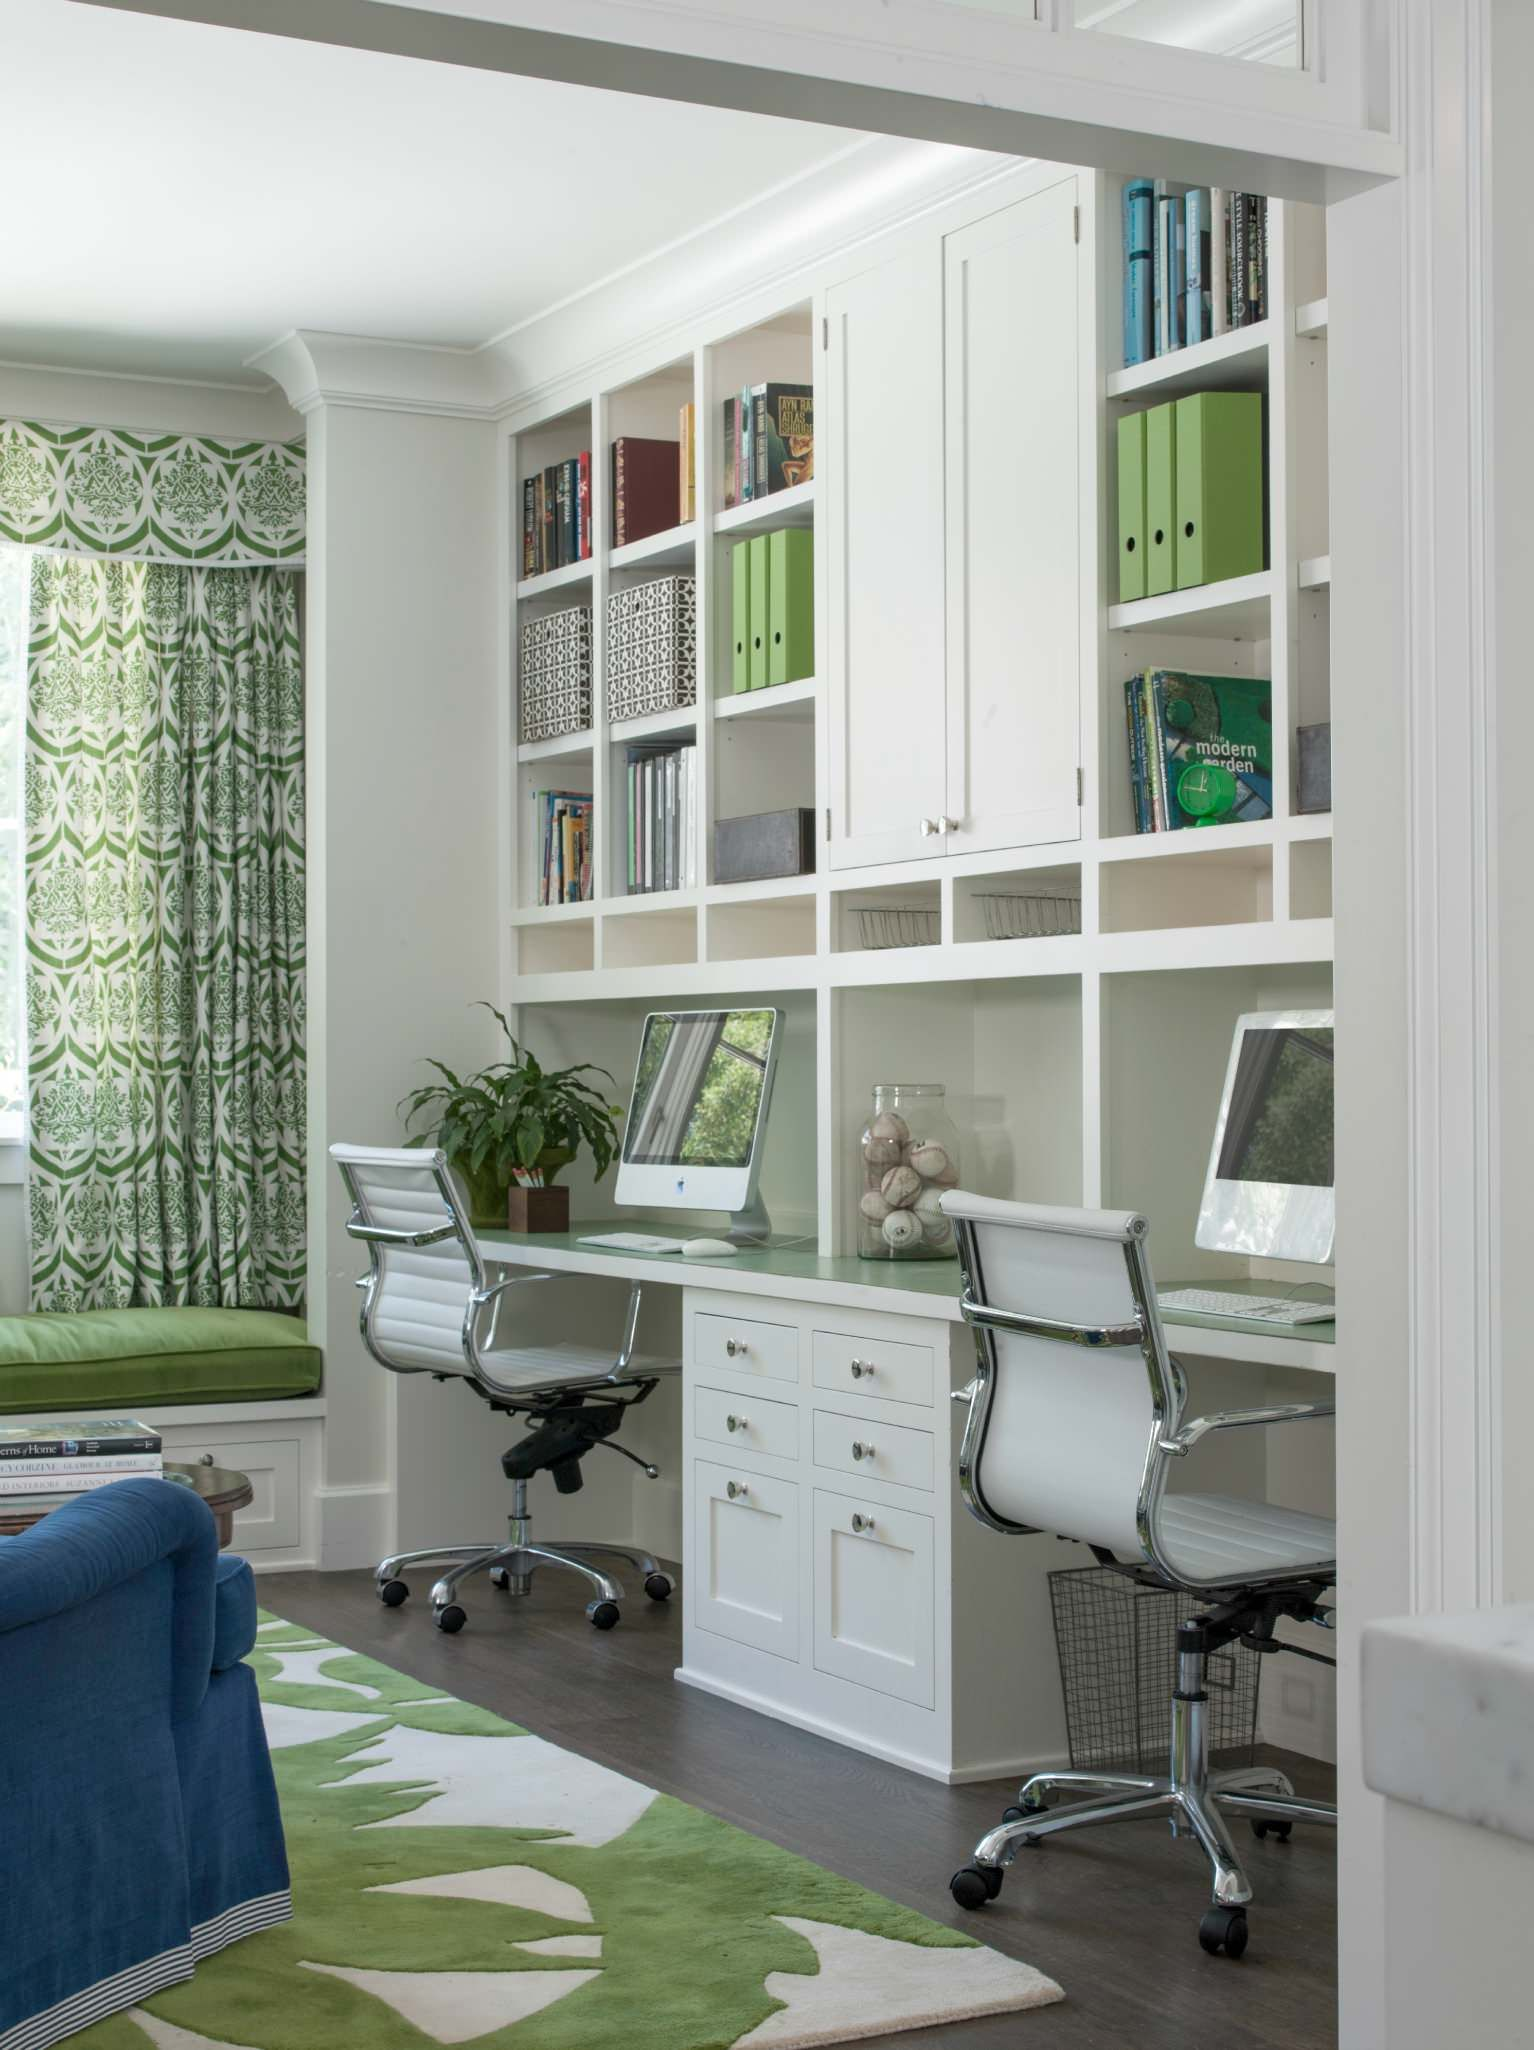 45 Stylish Home Office Design Ideas Home Office Design Home